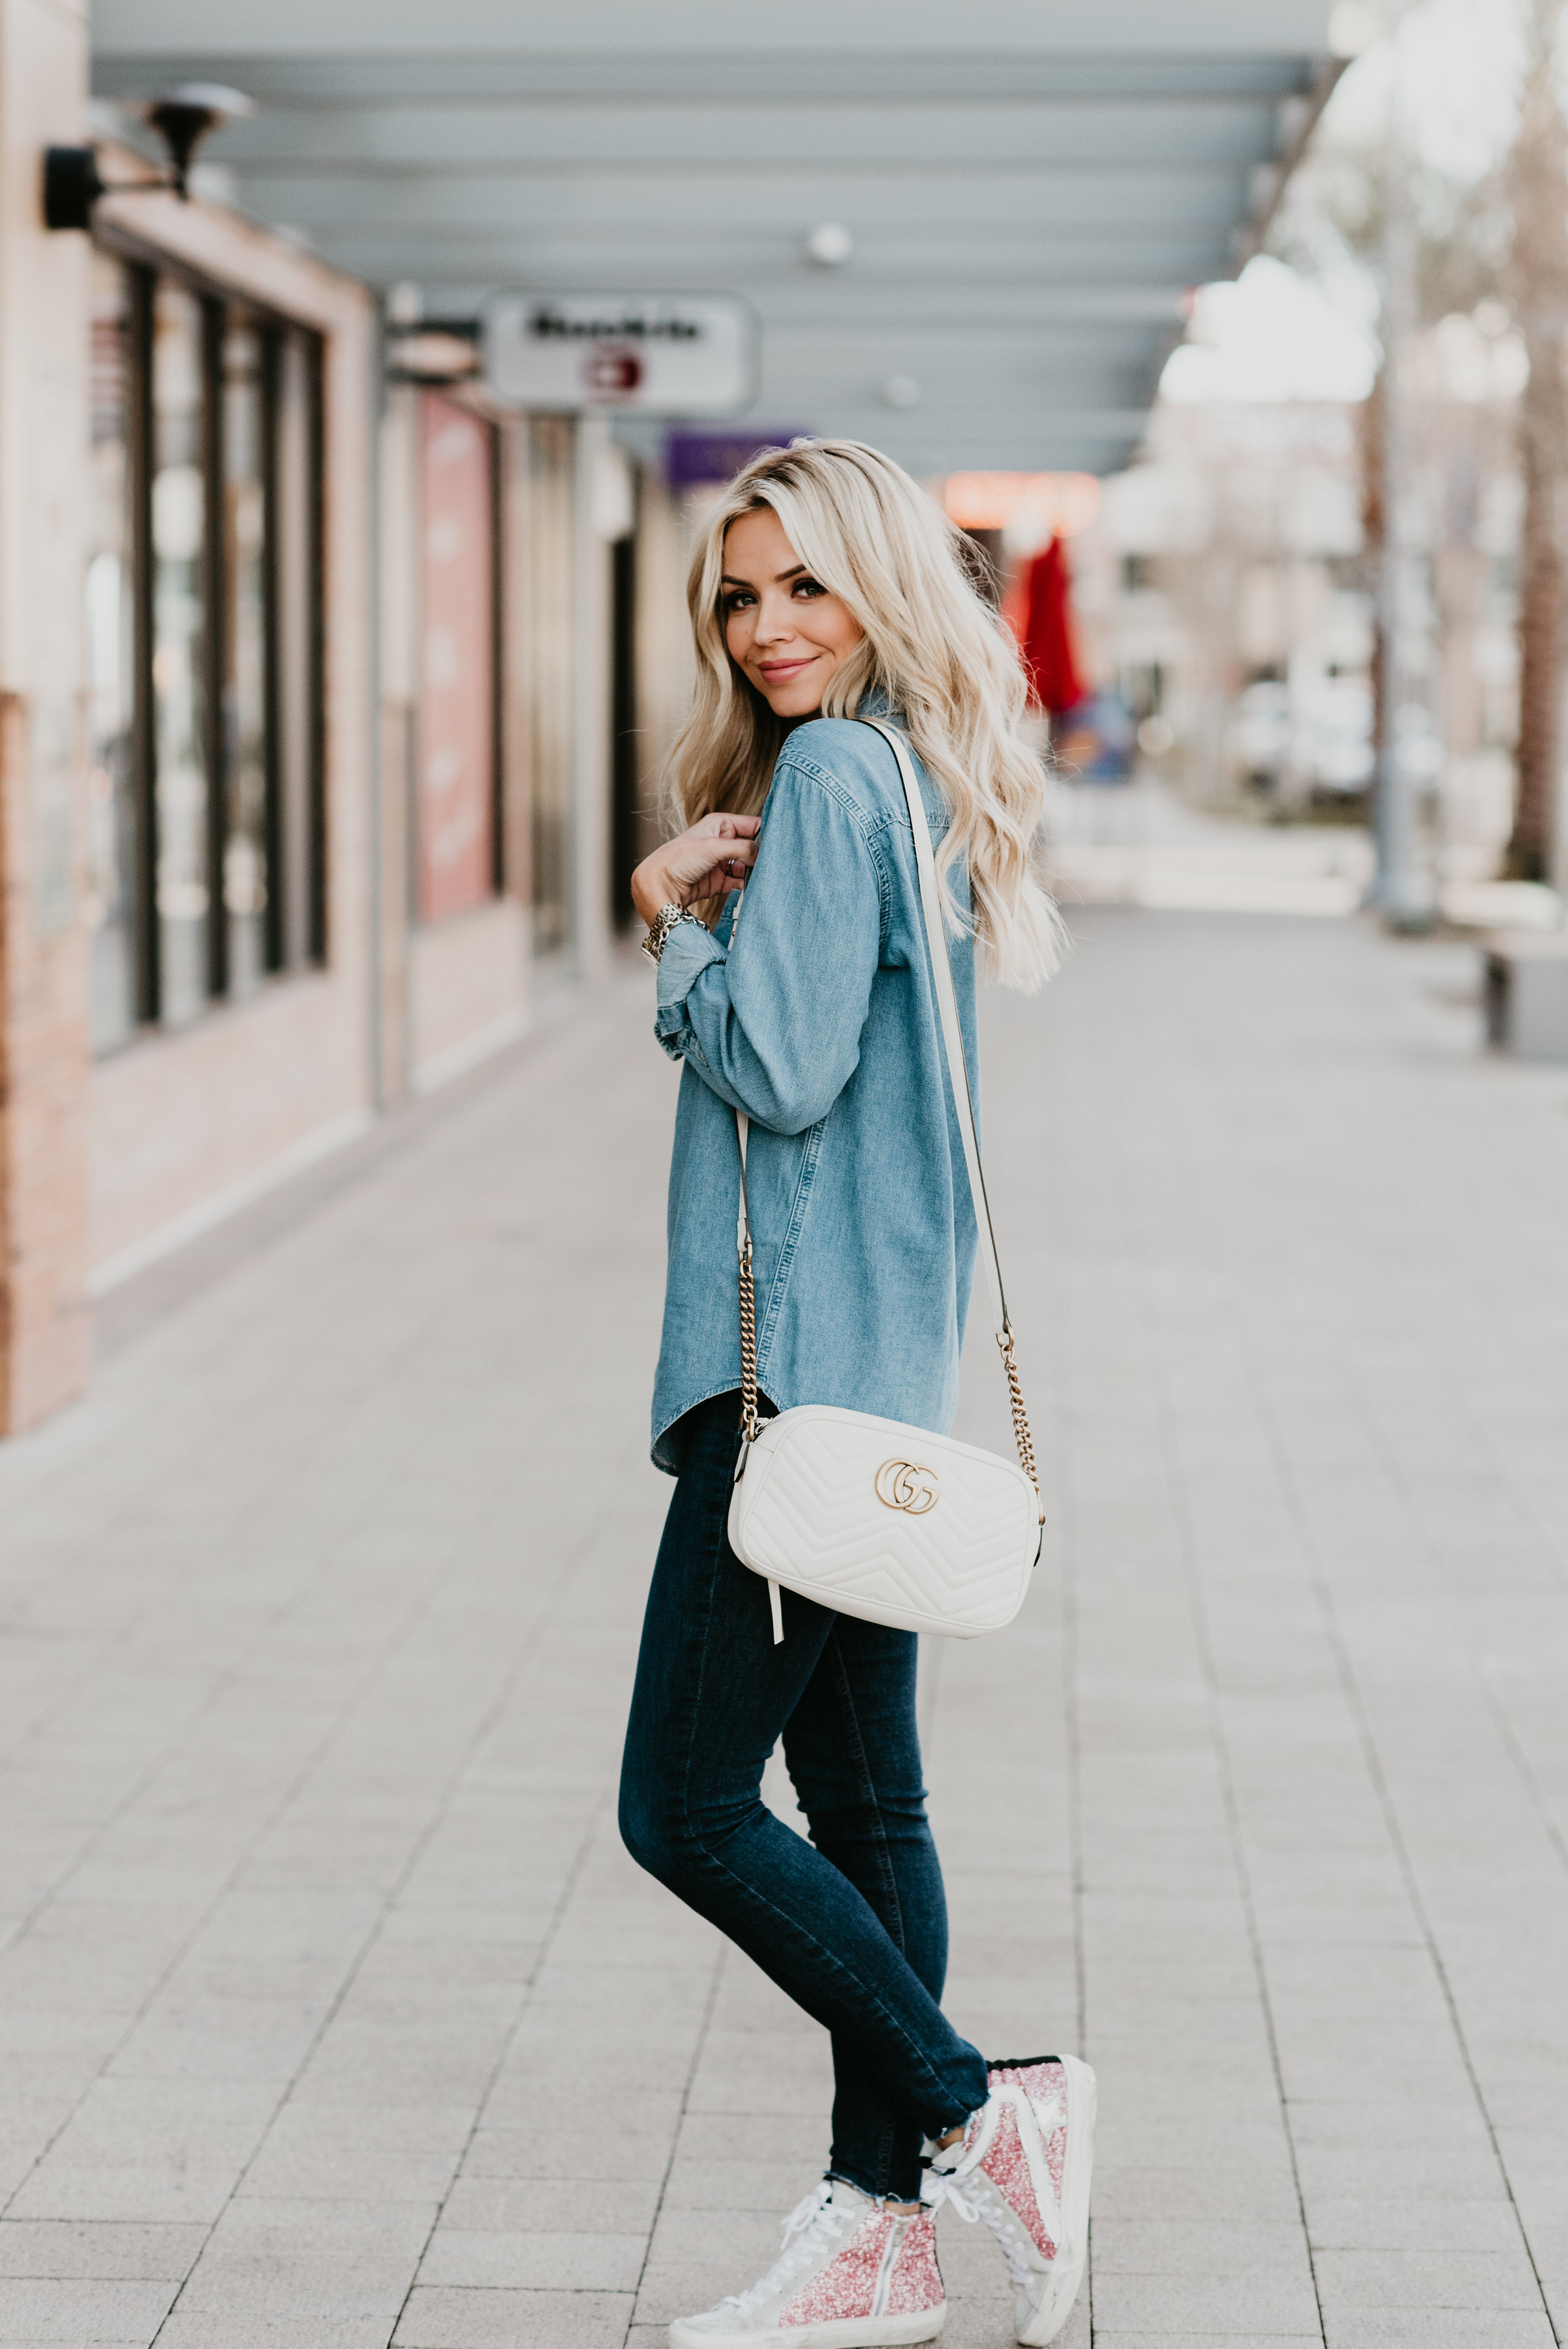 464607f4a69 Listing SEVERAL ways to style a chambray shirt! Chambray shirts are a  closet staple and ...